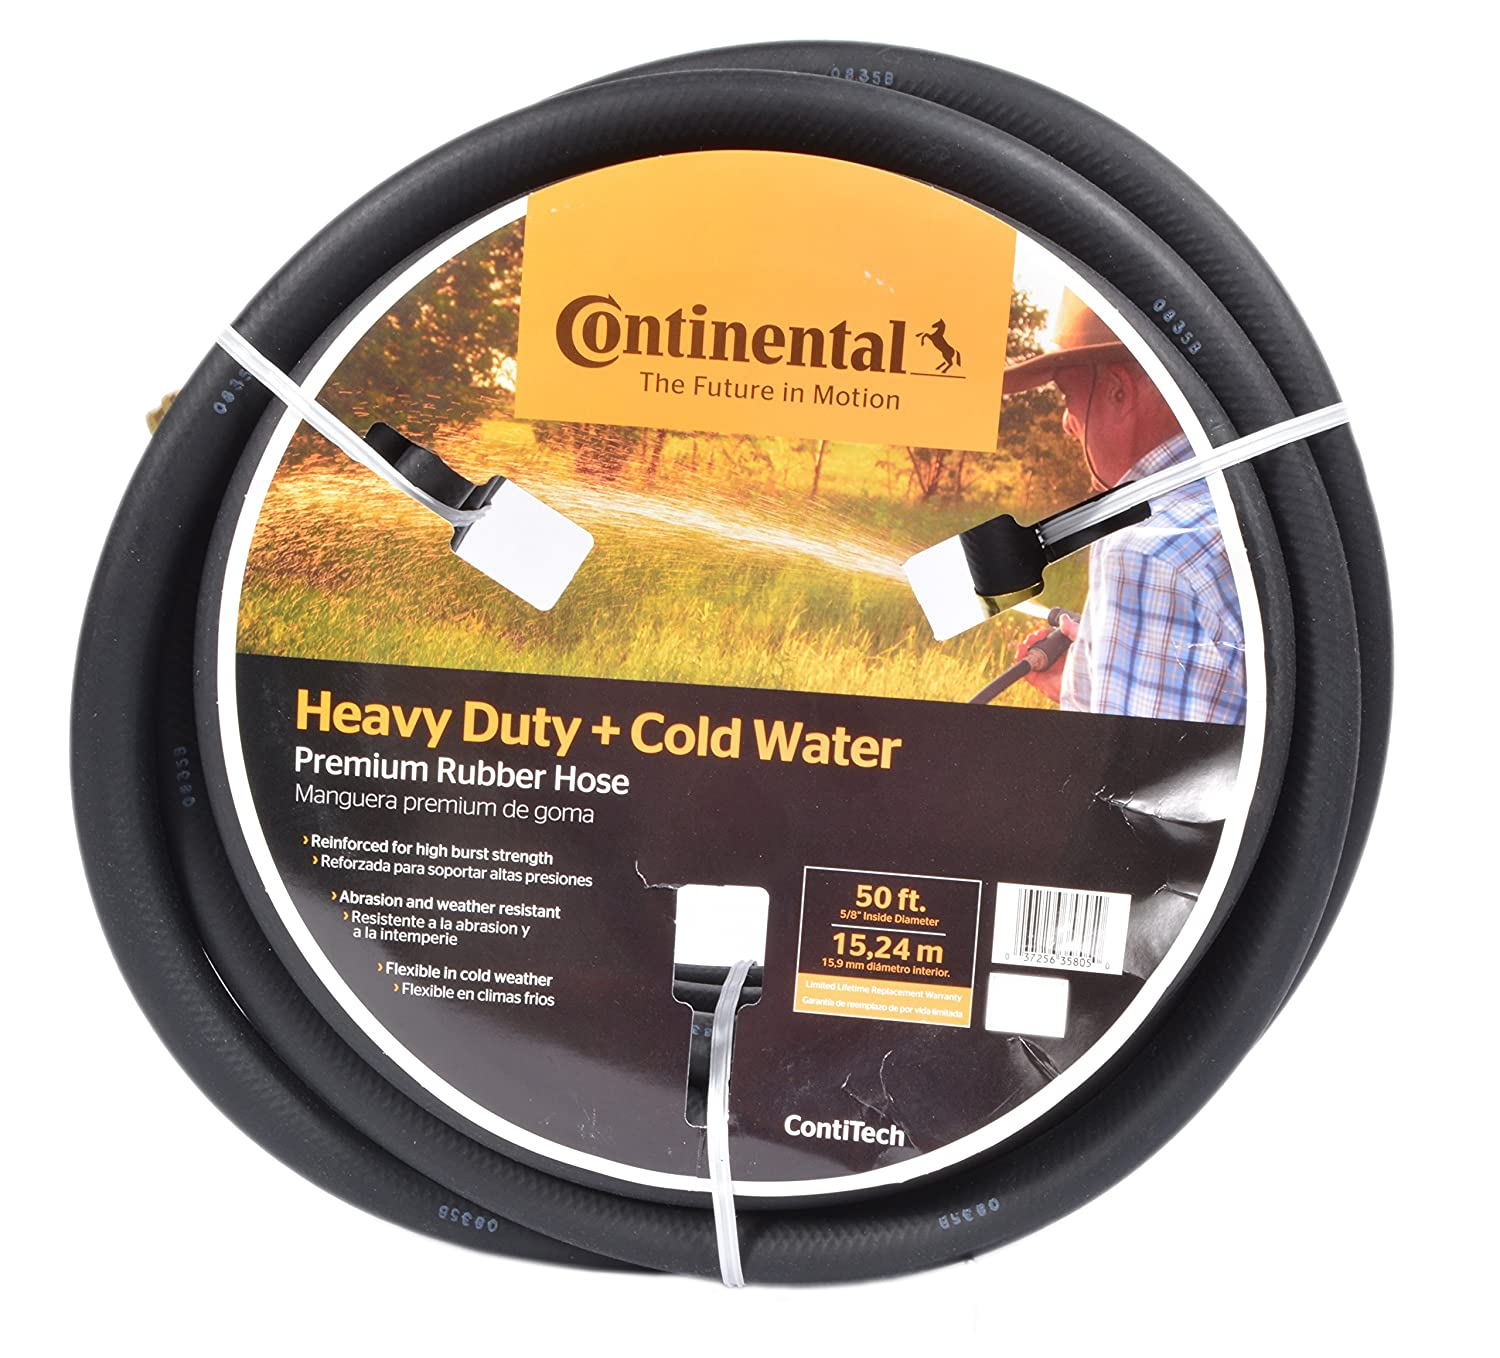 Continental ContiTech Black Rubber Heavy Duty Garden Hose, 5/8 ID x 50' Length Goodyear Engineered Products 20258074